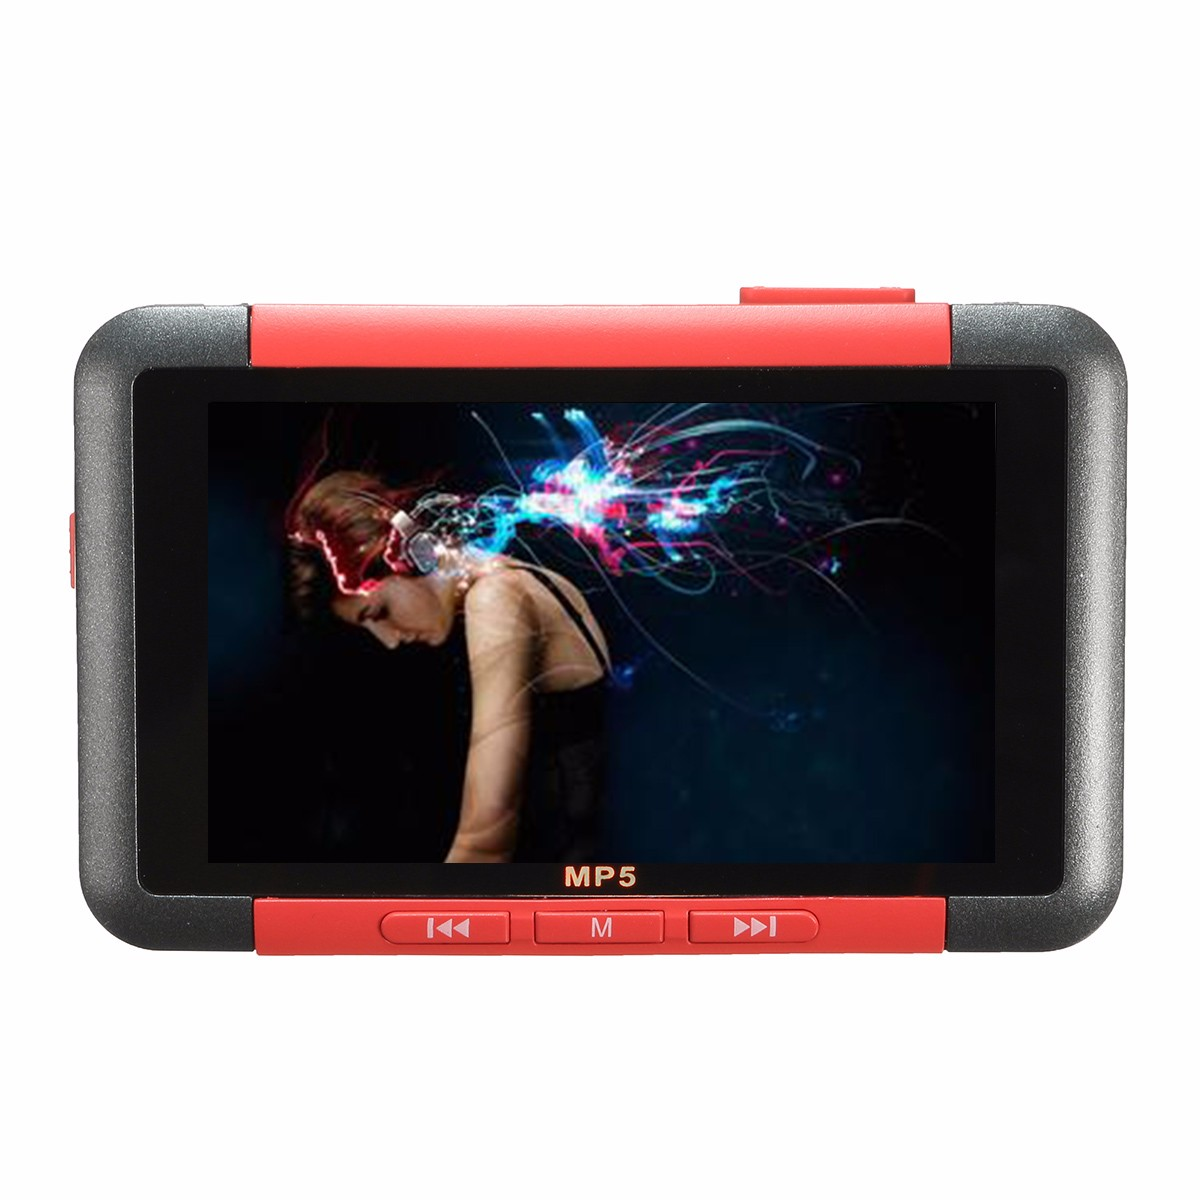 3 Inch Slim LCD Screen Music Player 8GB MP5 With FM Radio Video Movie Media Player MP5